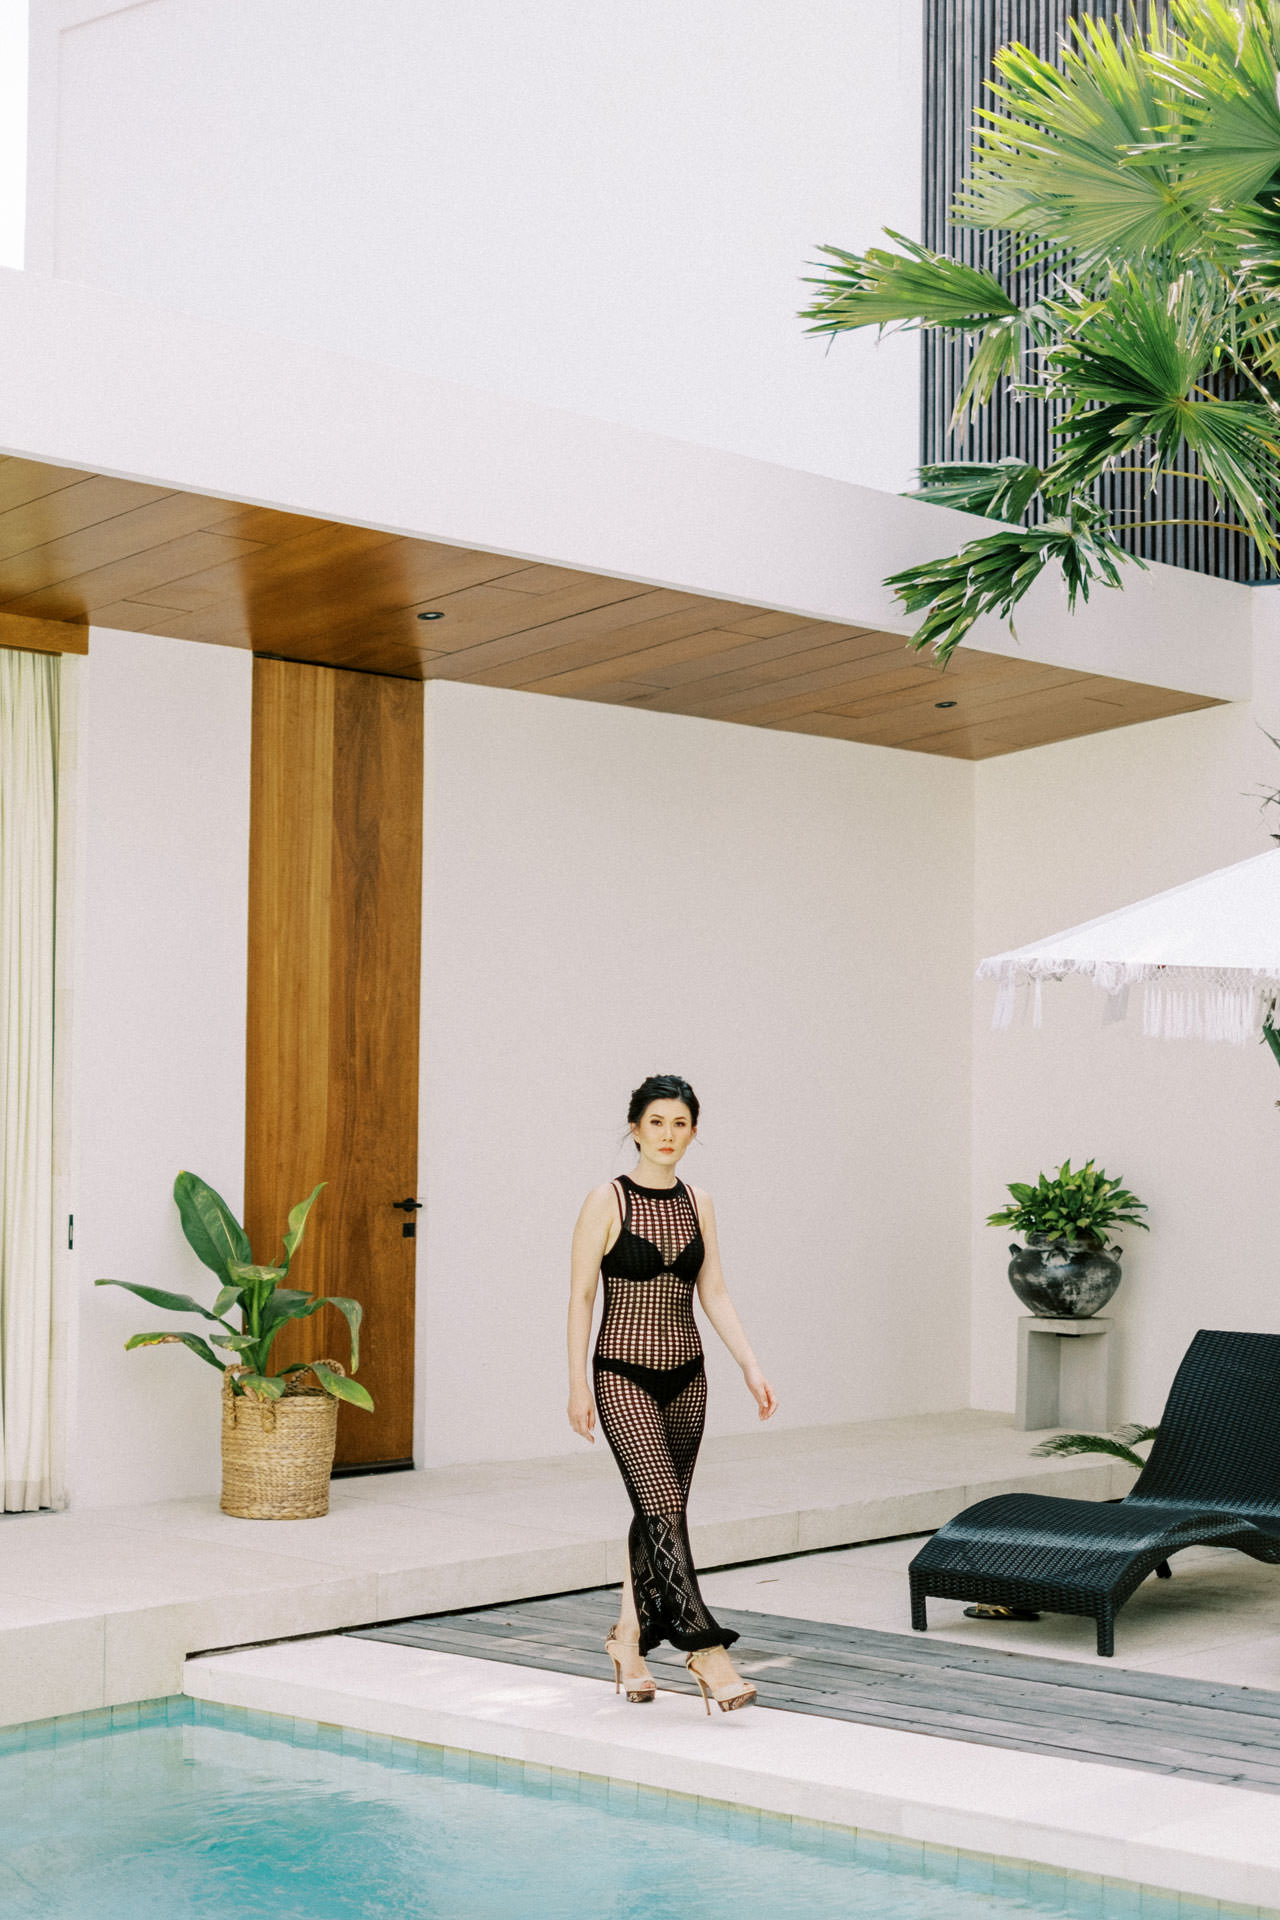 Indoor Photo Session with Modern Bali Interiors 23